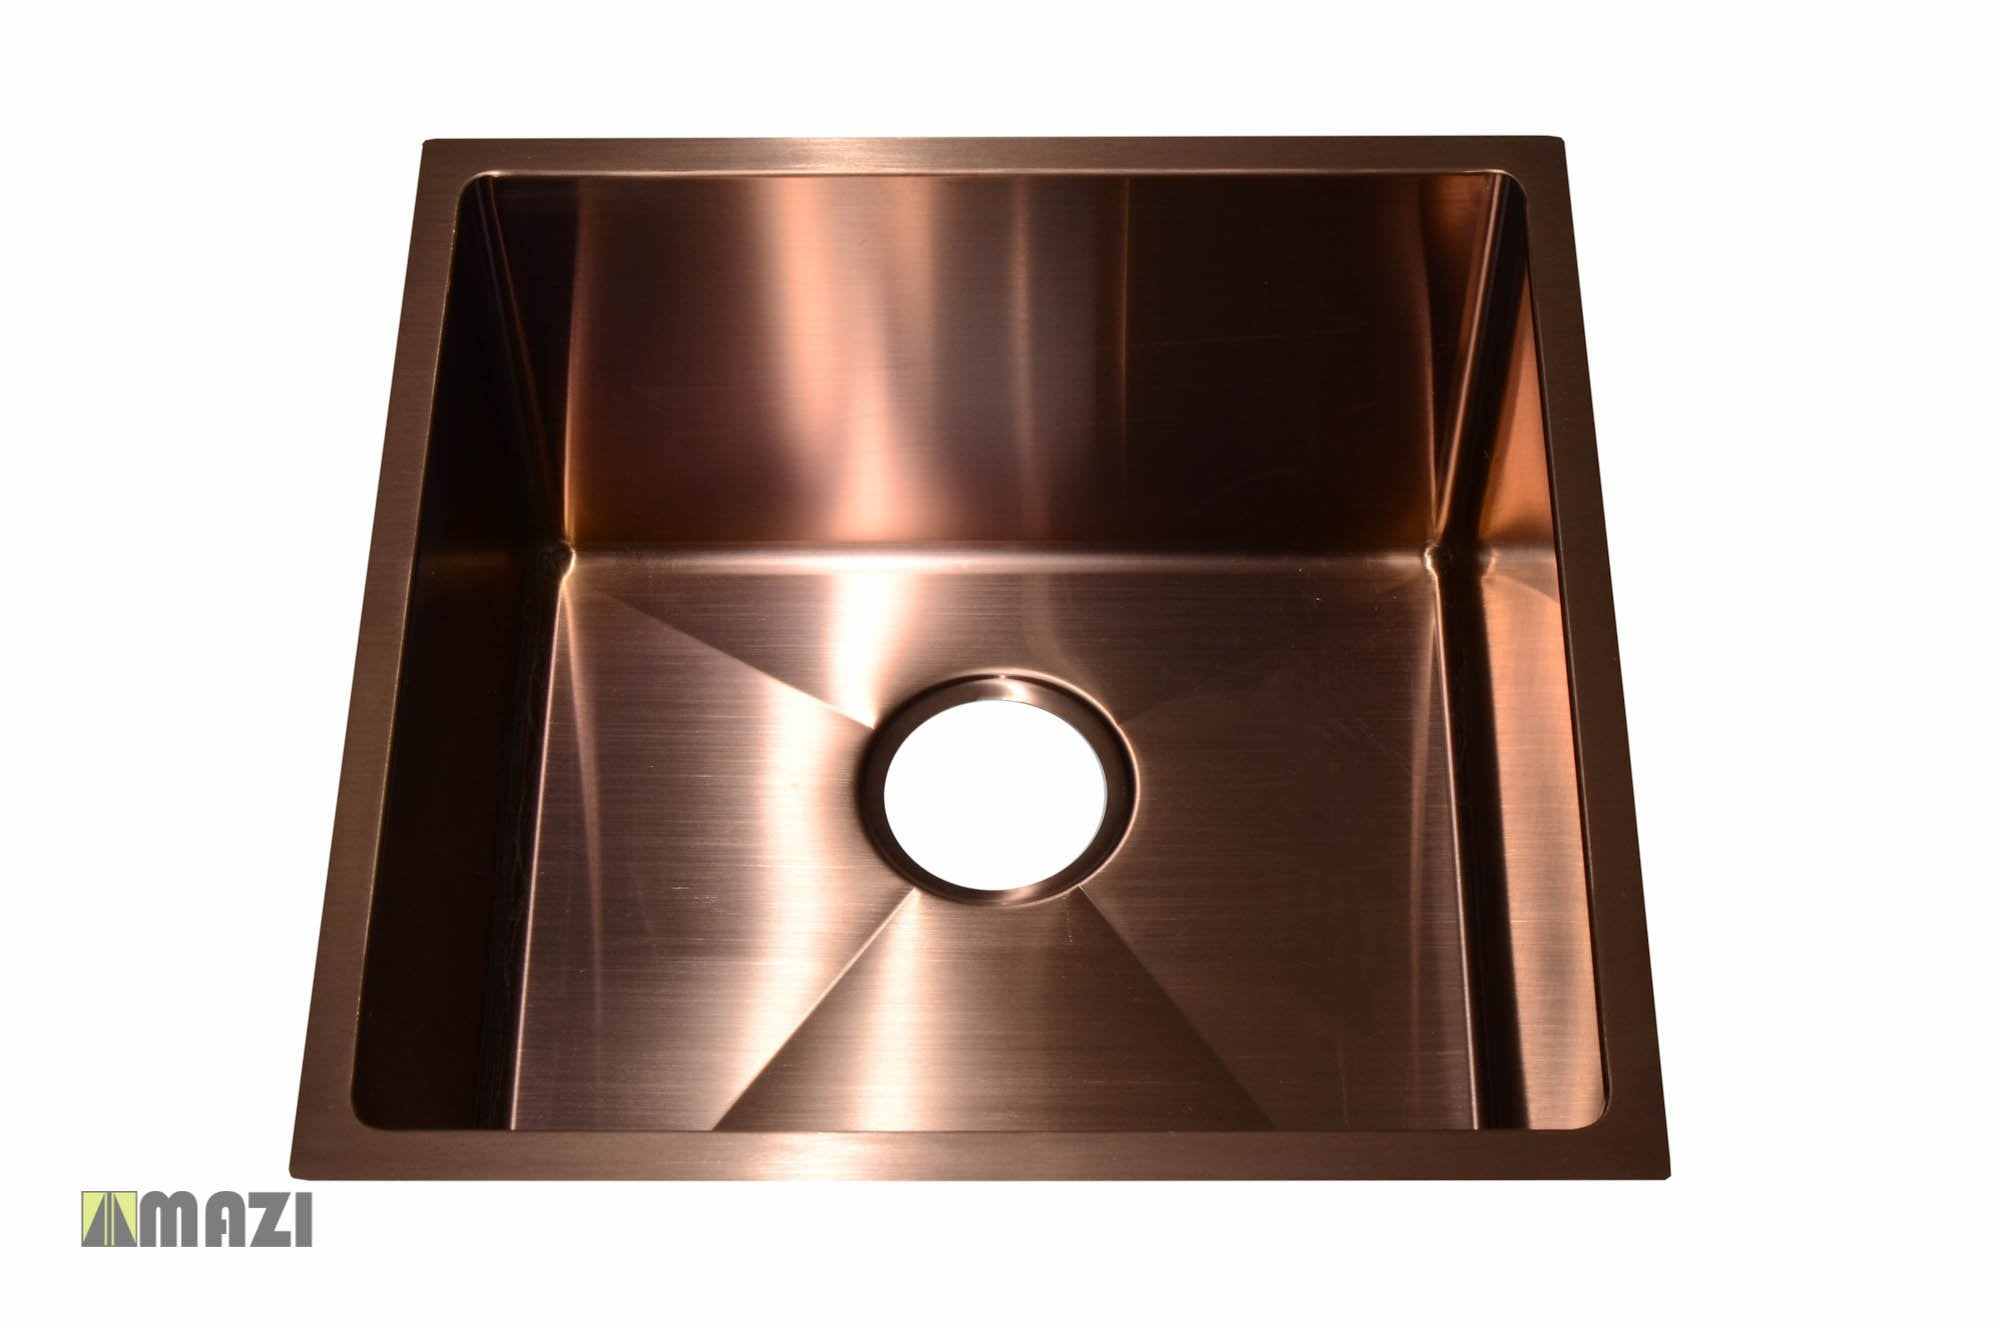 Stainless Steel Handmade Color Kitchen Sink Sb1295 Copper